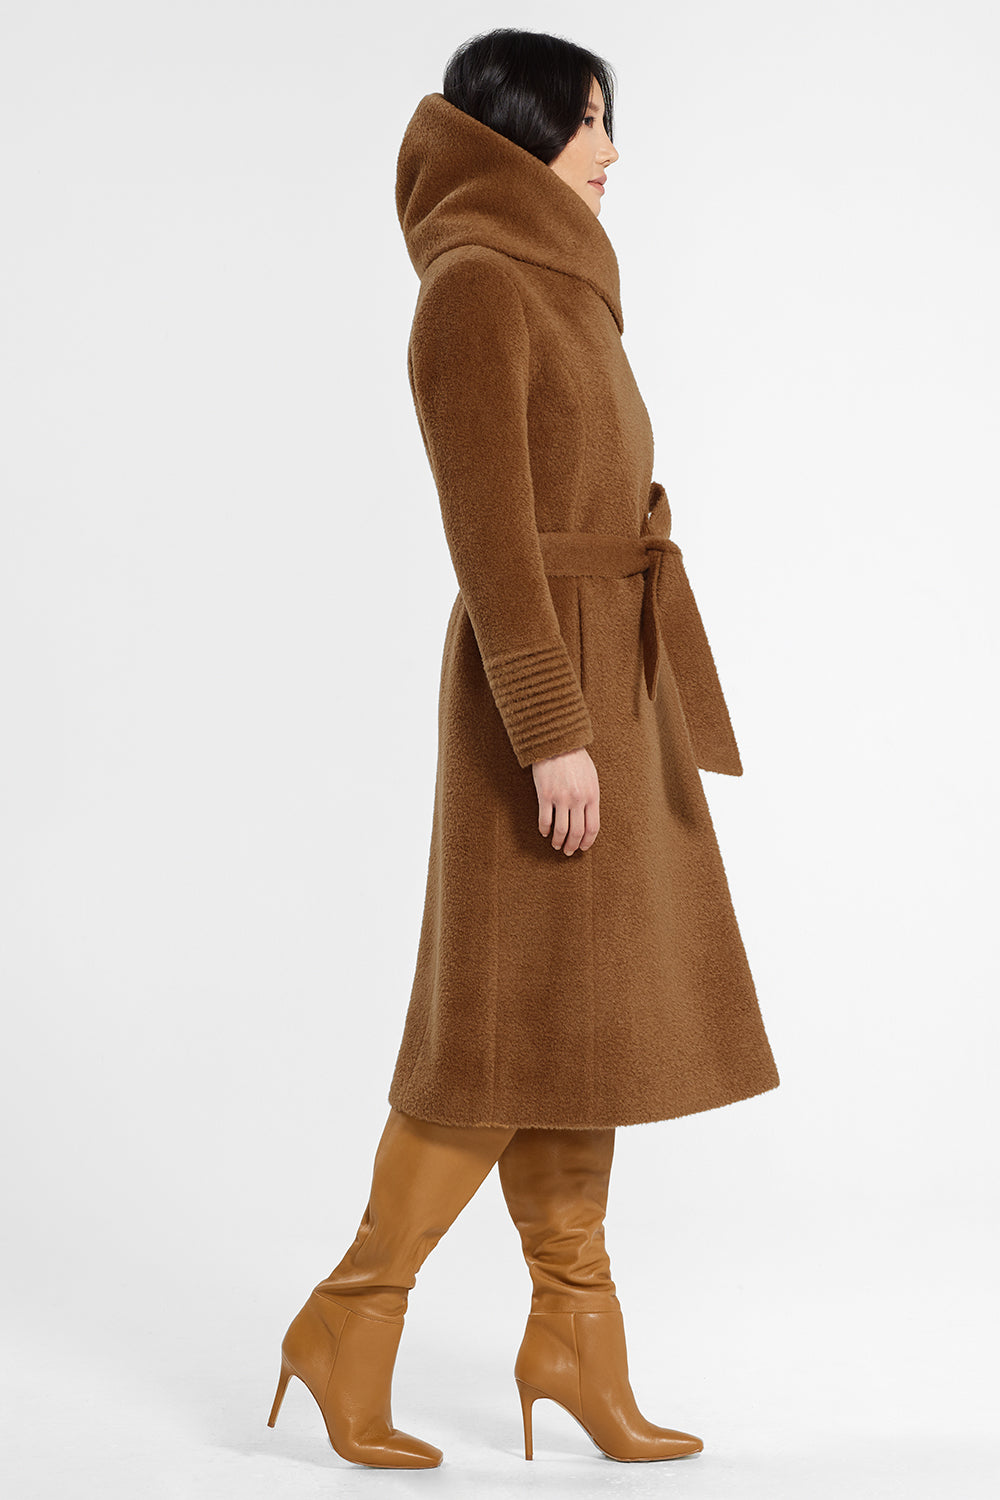 Sentaler Bouclé Alpaca Long Hooded Wrap Coat featured in Bouclé Alpaca and available in Caramel Café. Seen from side.